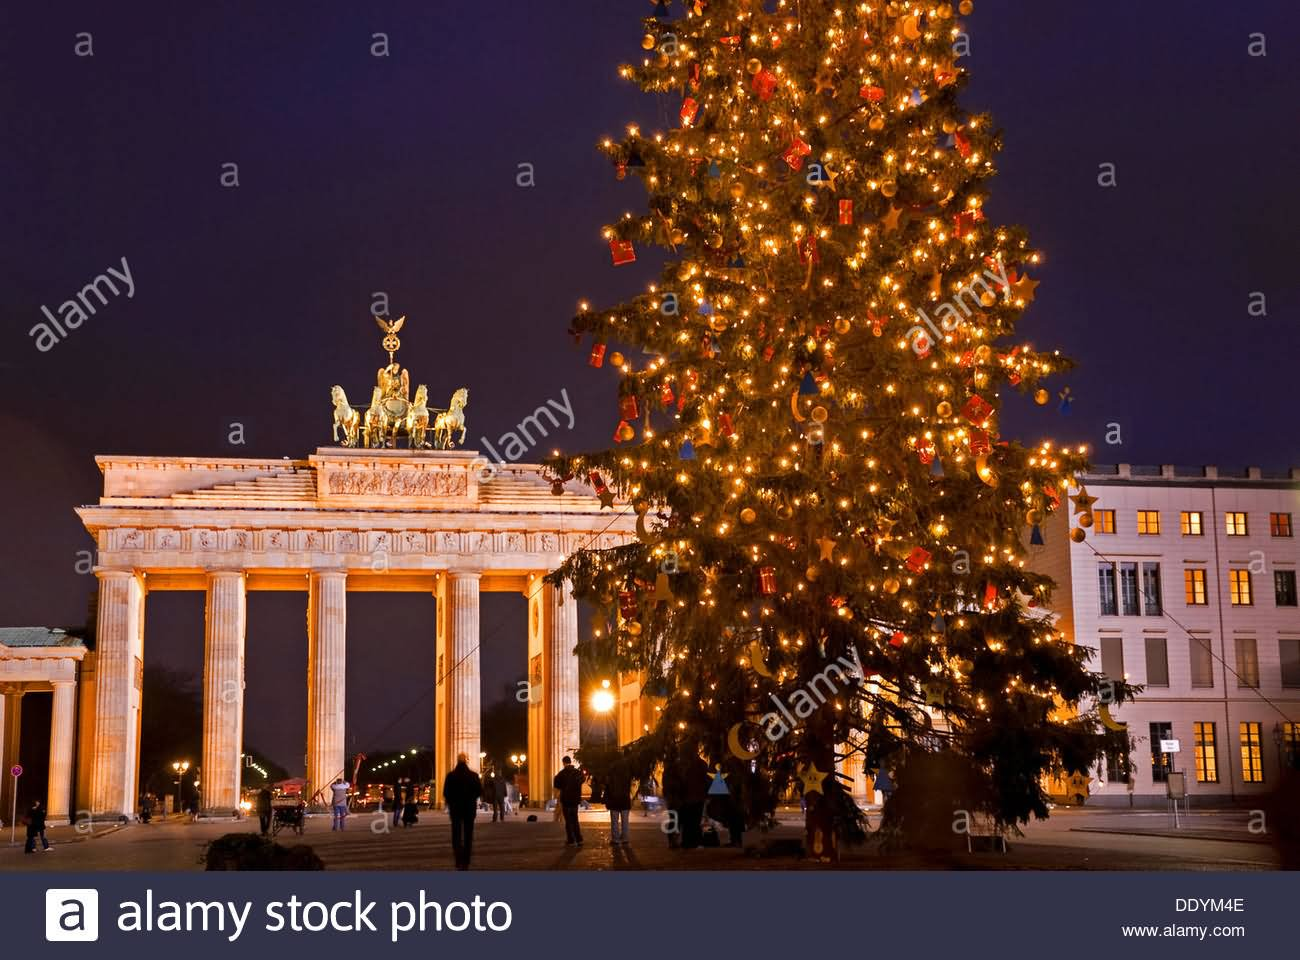 brandenburg gate at night - photo #28